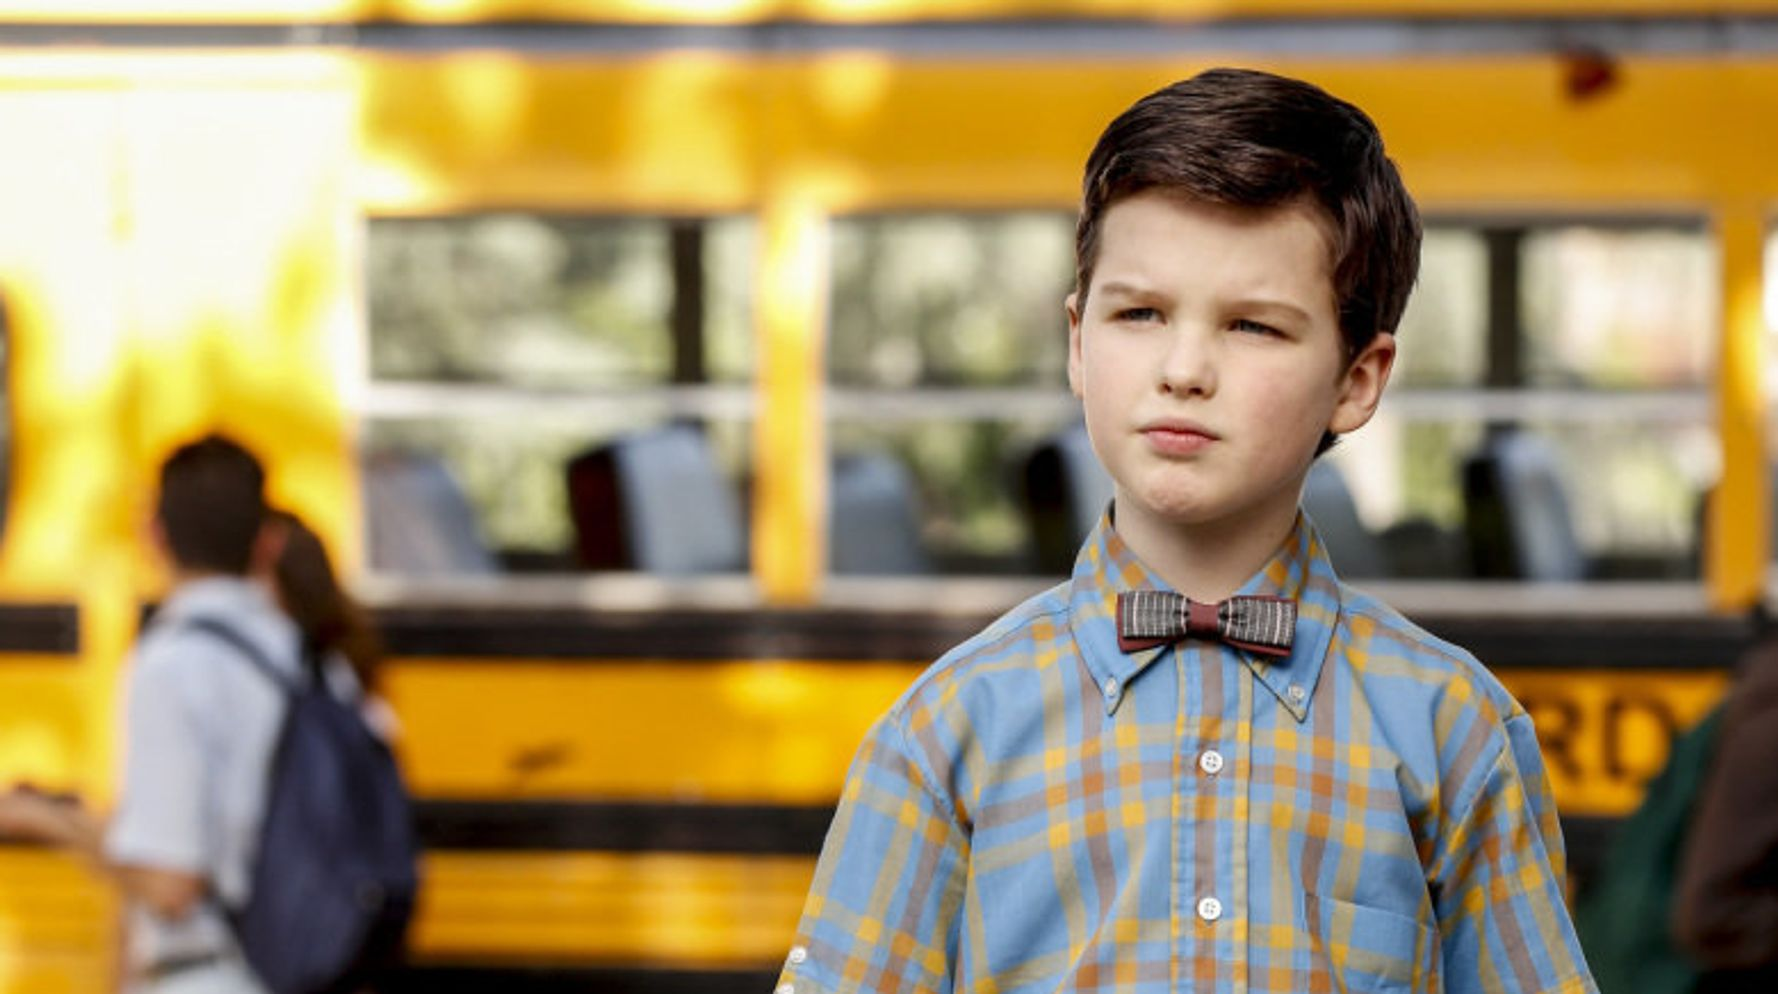 The Weird 'Young Sheldon' Casting Choice You Might've Missed | HuffPost